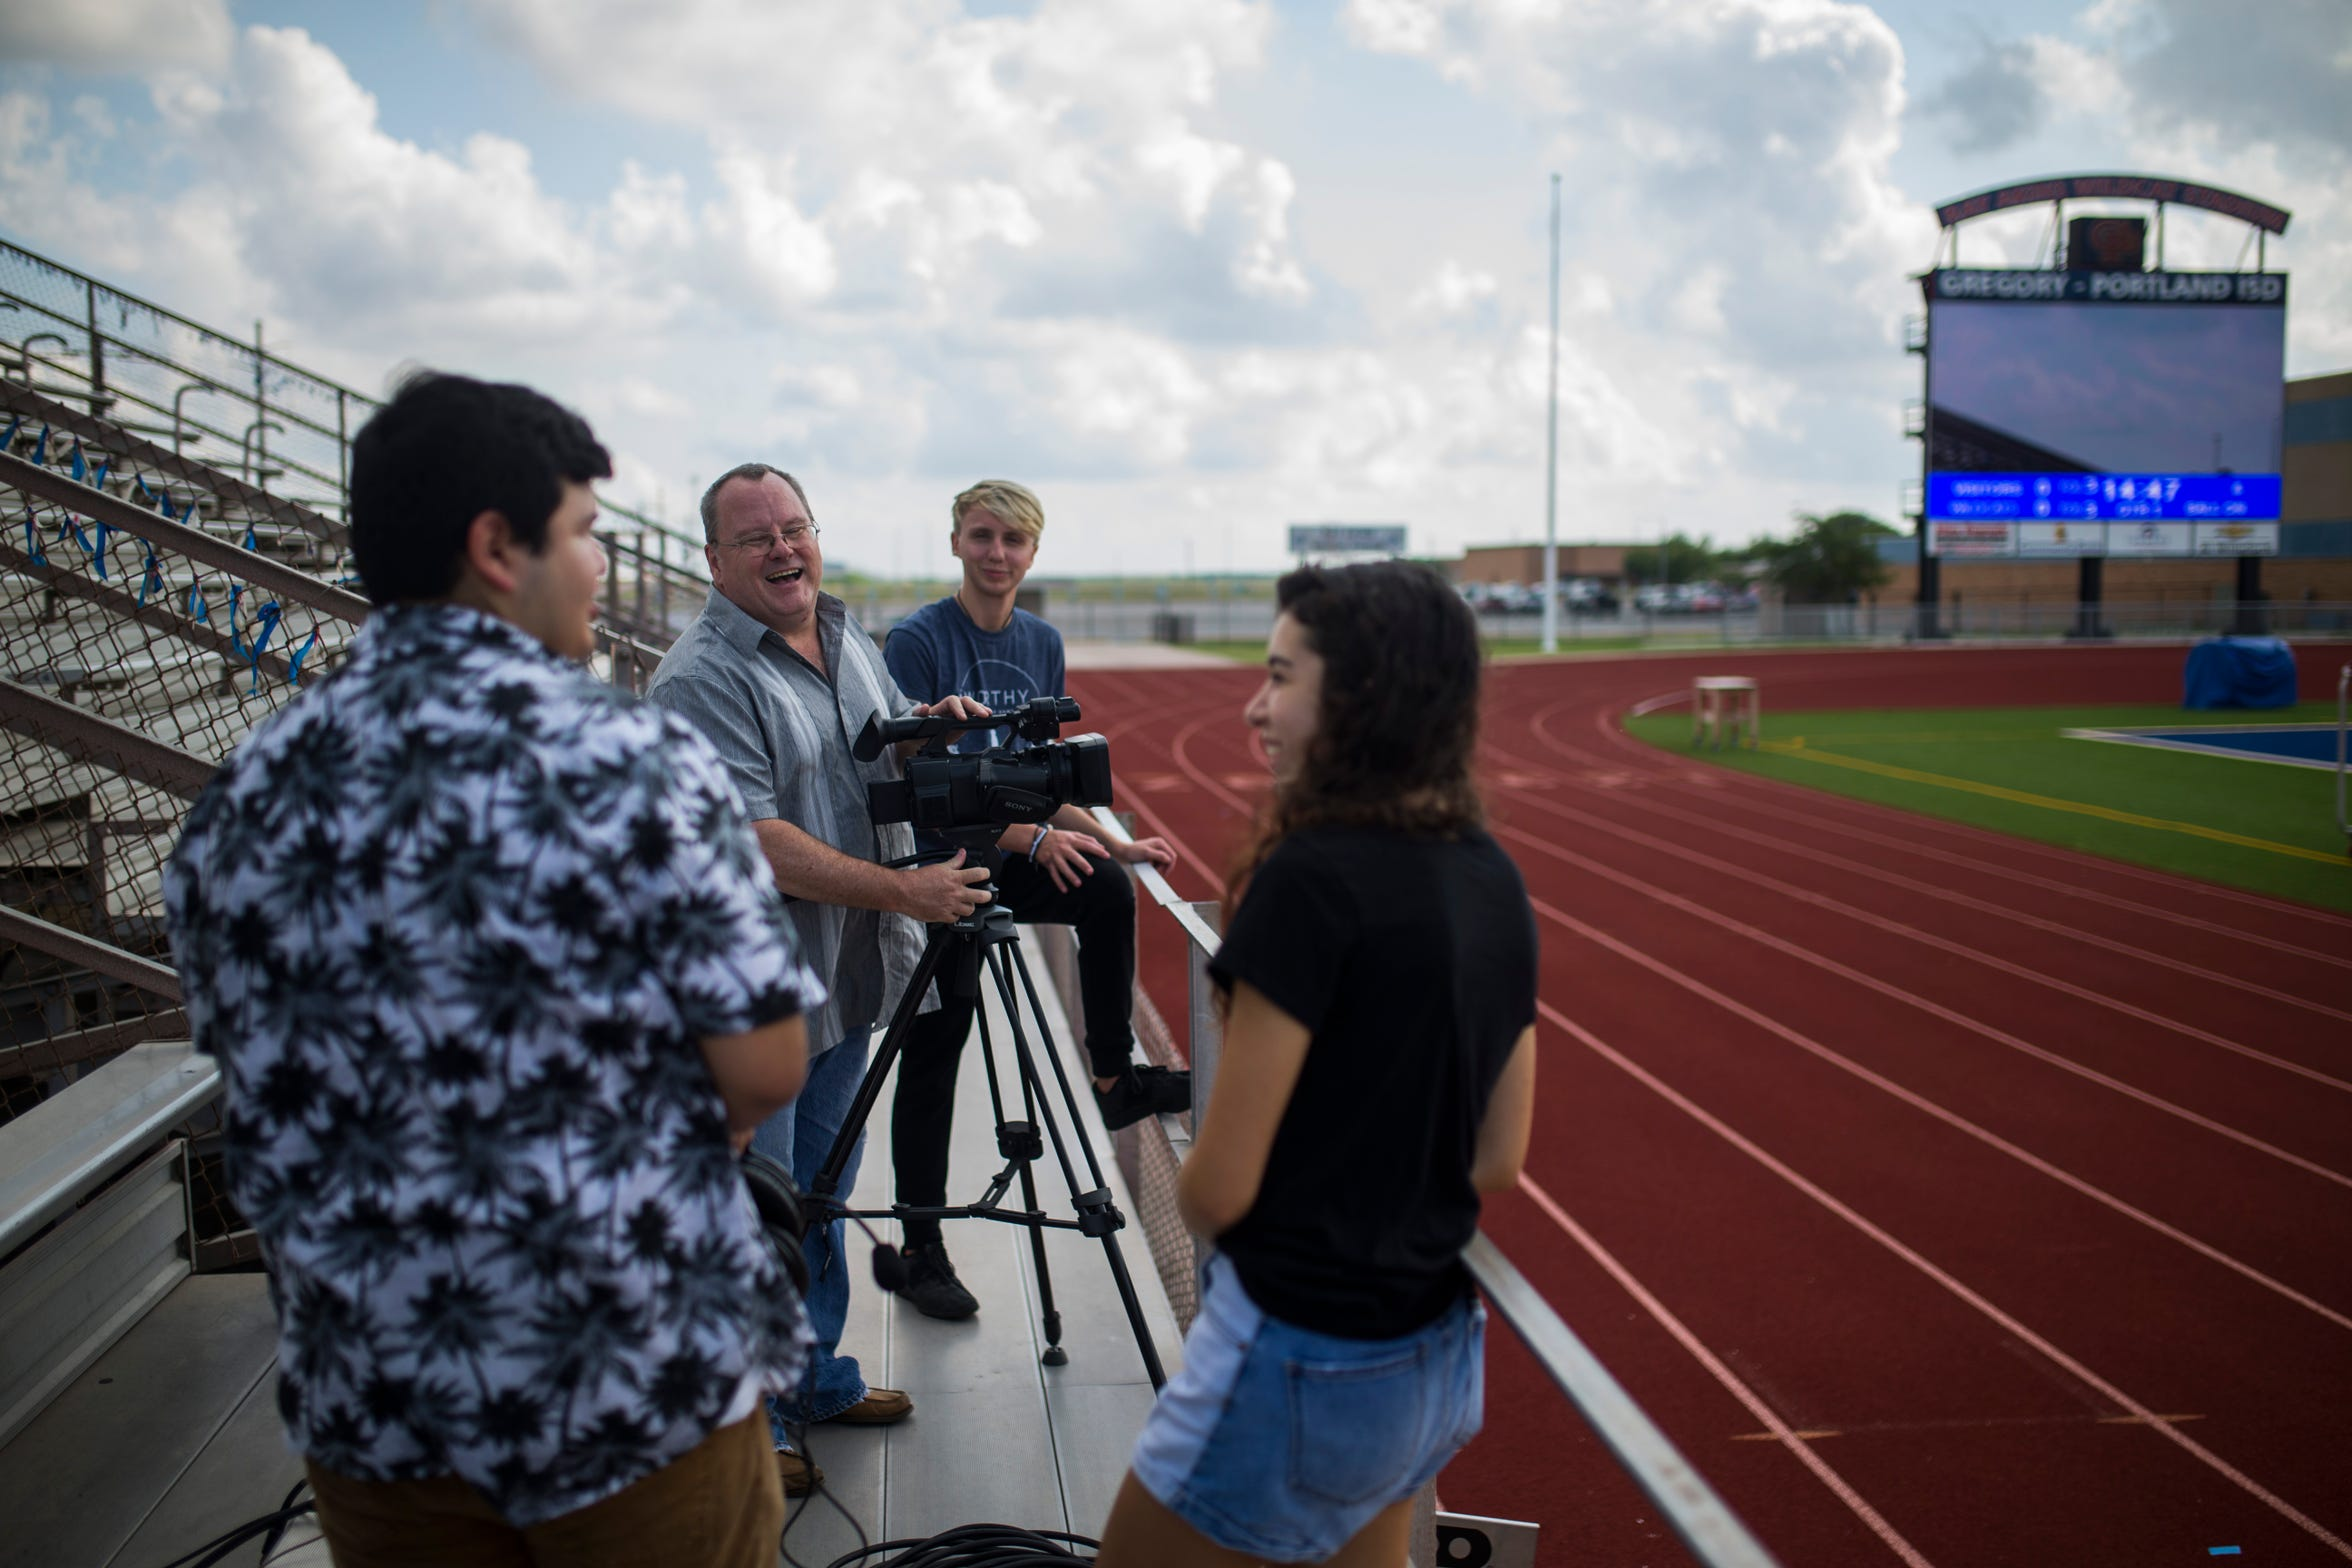 Brendan Opal, 17 (left),  David Rains, Zac Breaux, 17, and Anna Bella Villarreal, 17,  set up a camera to practice  for the upcoming football season, Friday August 3, 2018, at Ray Akins Wildcat Stadium.